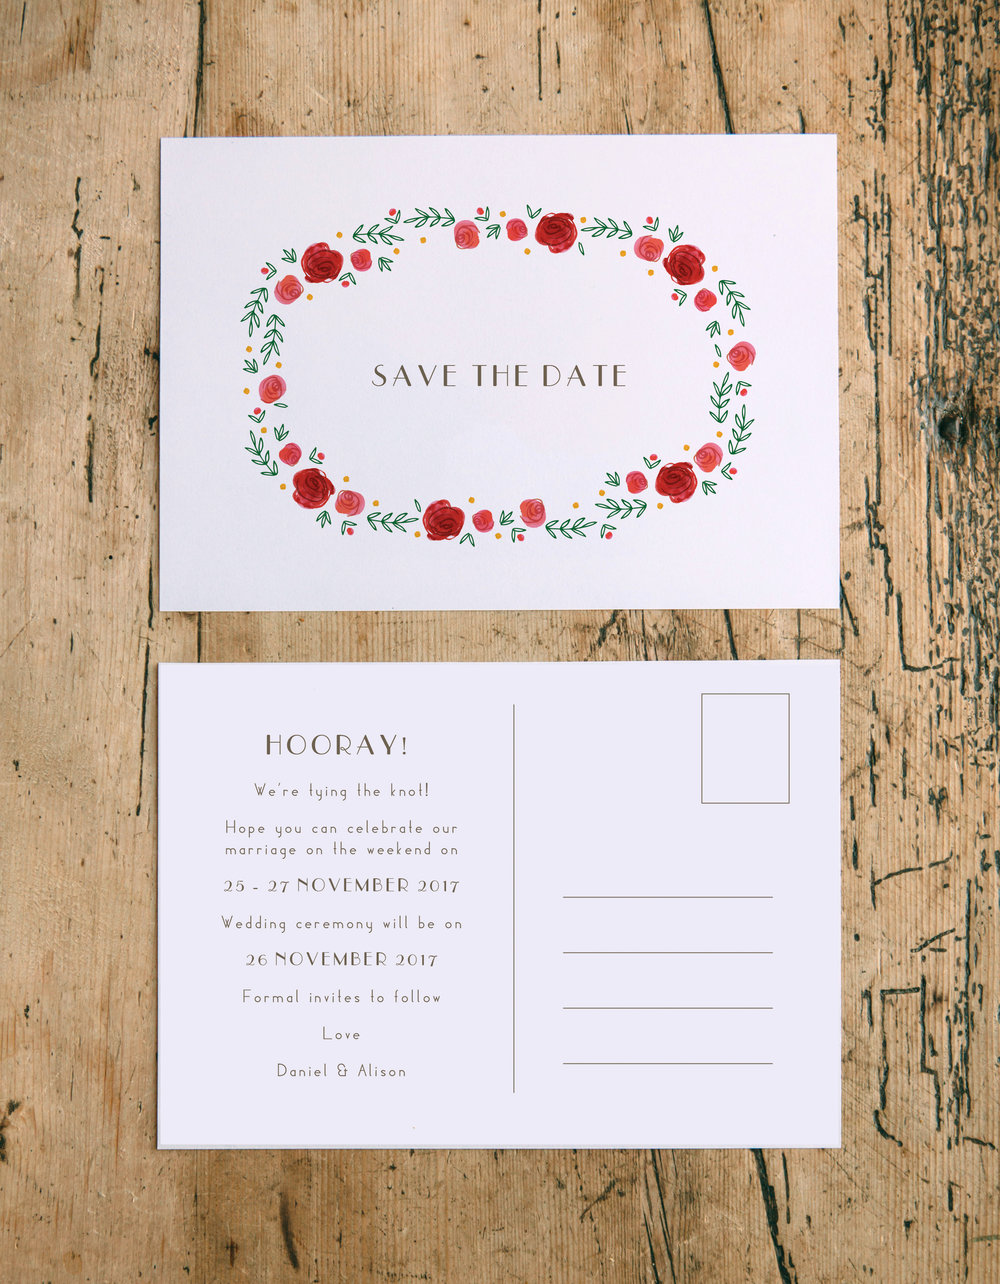 Dearly Beloved_Hunstham Court_Save the Date.jpg